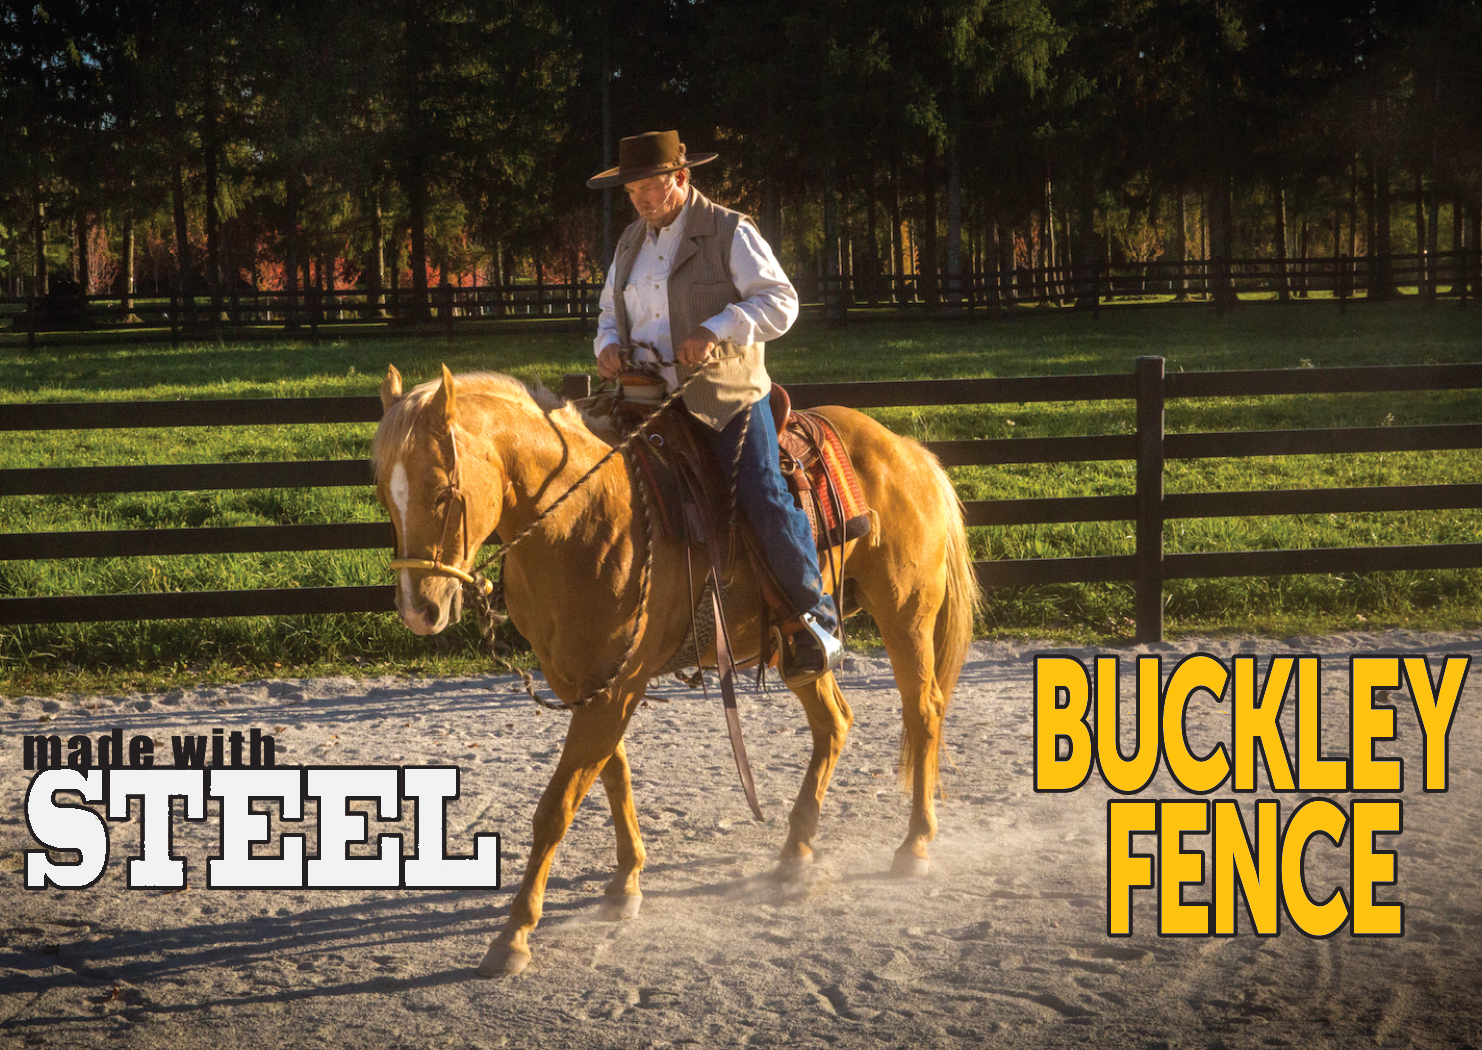 Commercial Thumbnail Buckley Fence